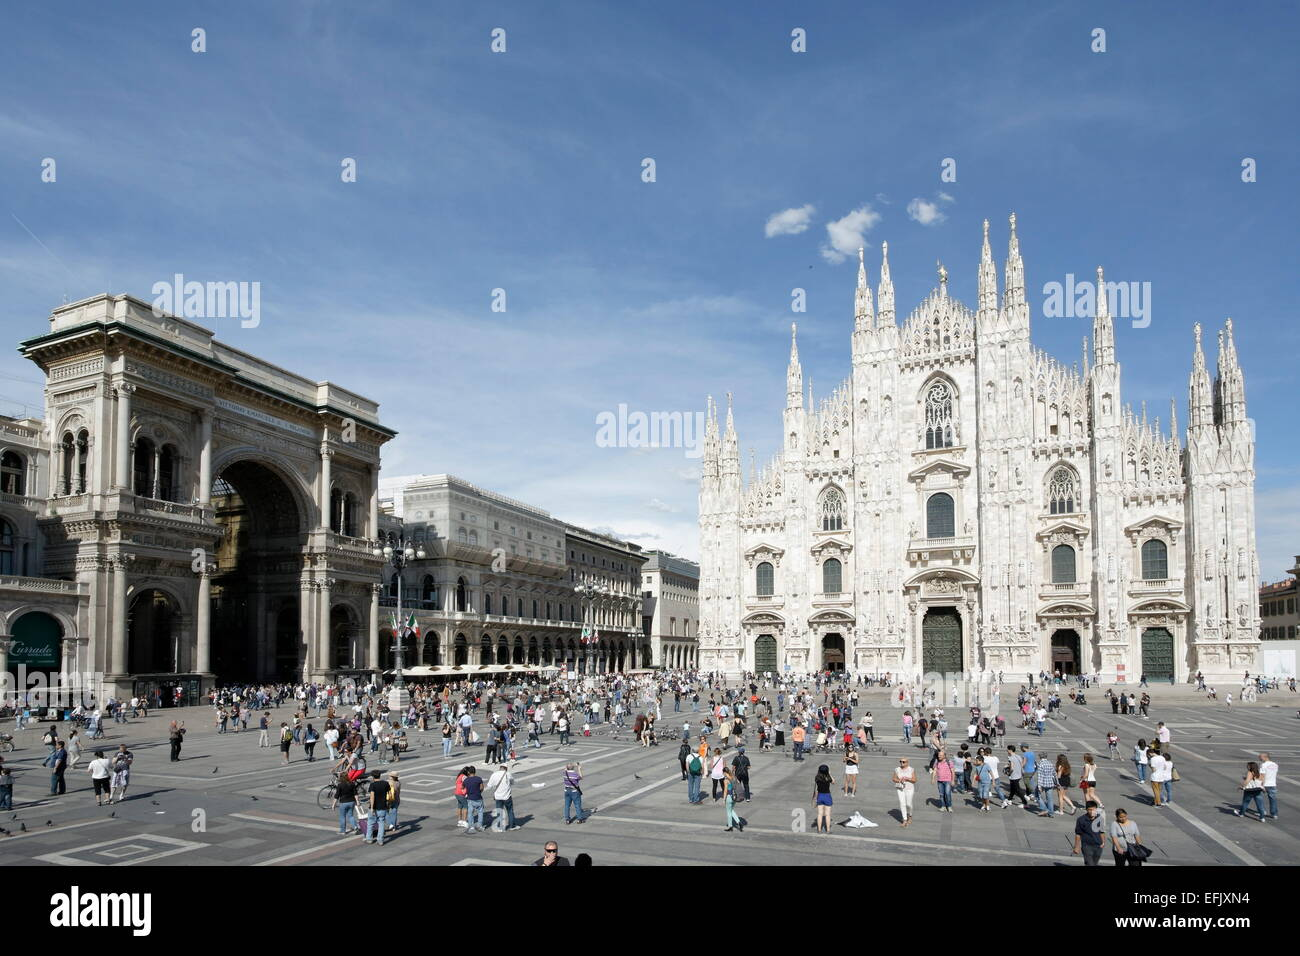 Piazza del Duomo with Milan Cathedral and Galleria Vittorio Emanuele II, Milan, Lombardy, Italy - Stock Image